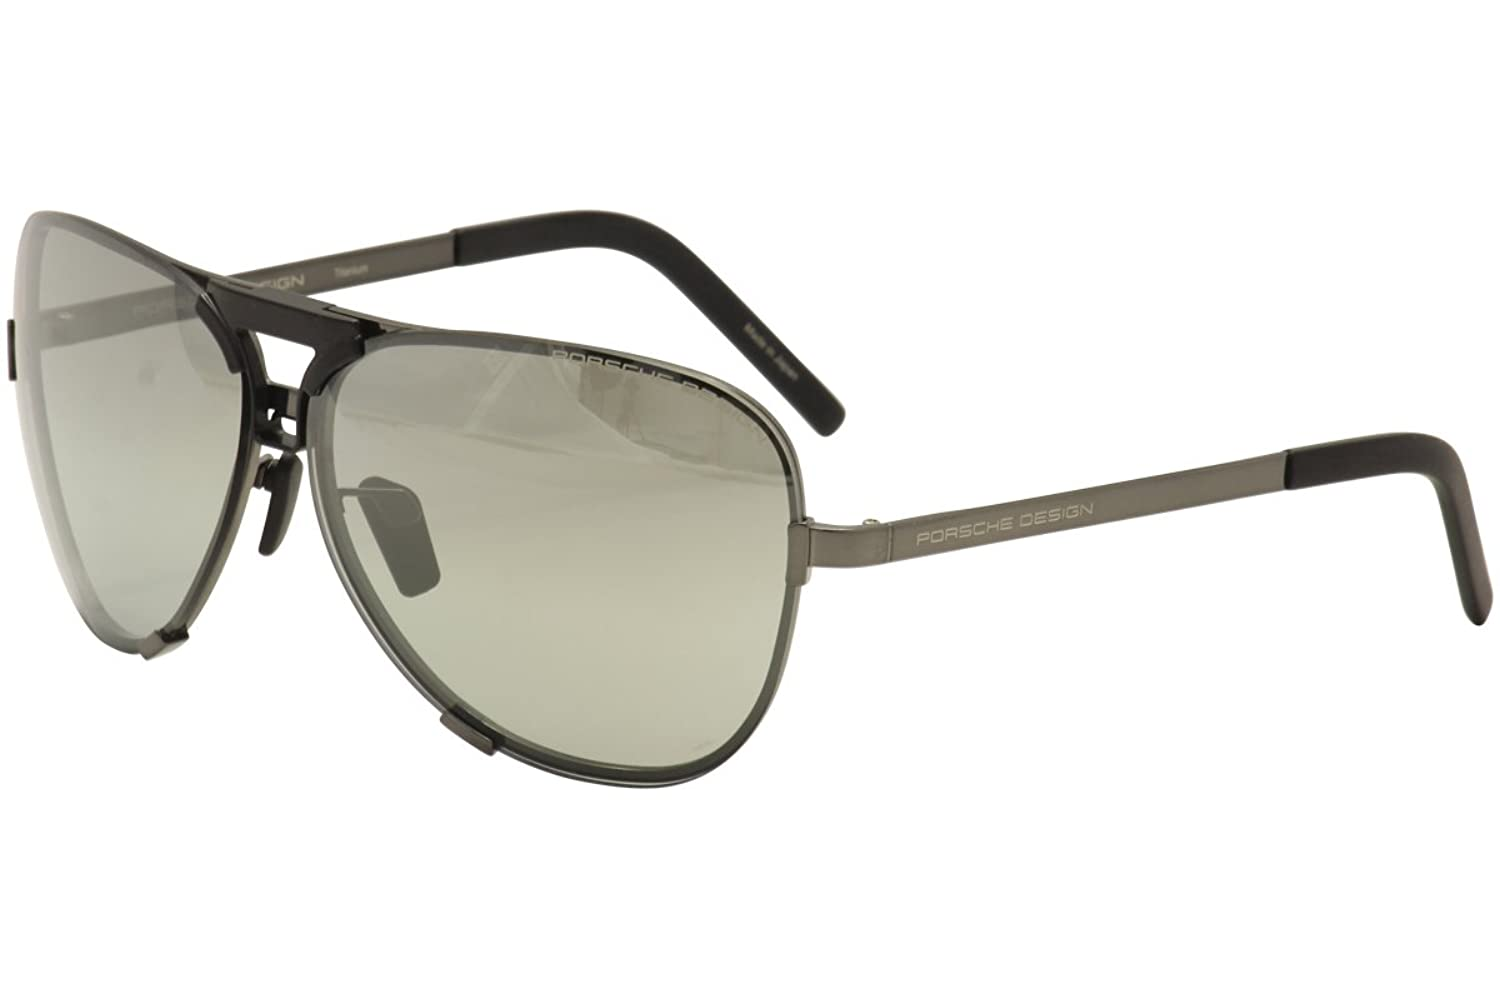 c10677677755 Porsche Design P8678 A Dark Gun Aviator Mens Sunglasses Interchangeable  Lens outlet